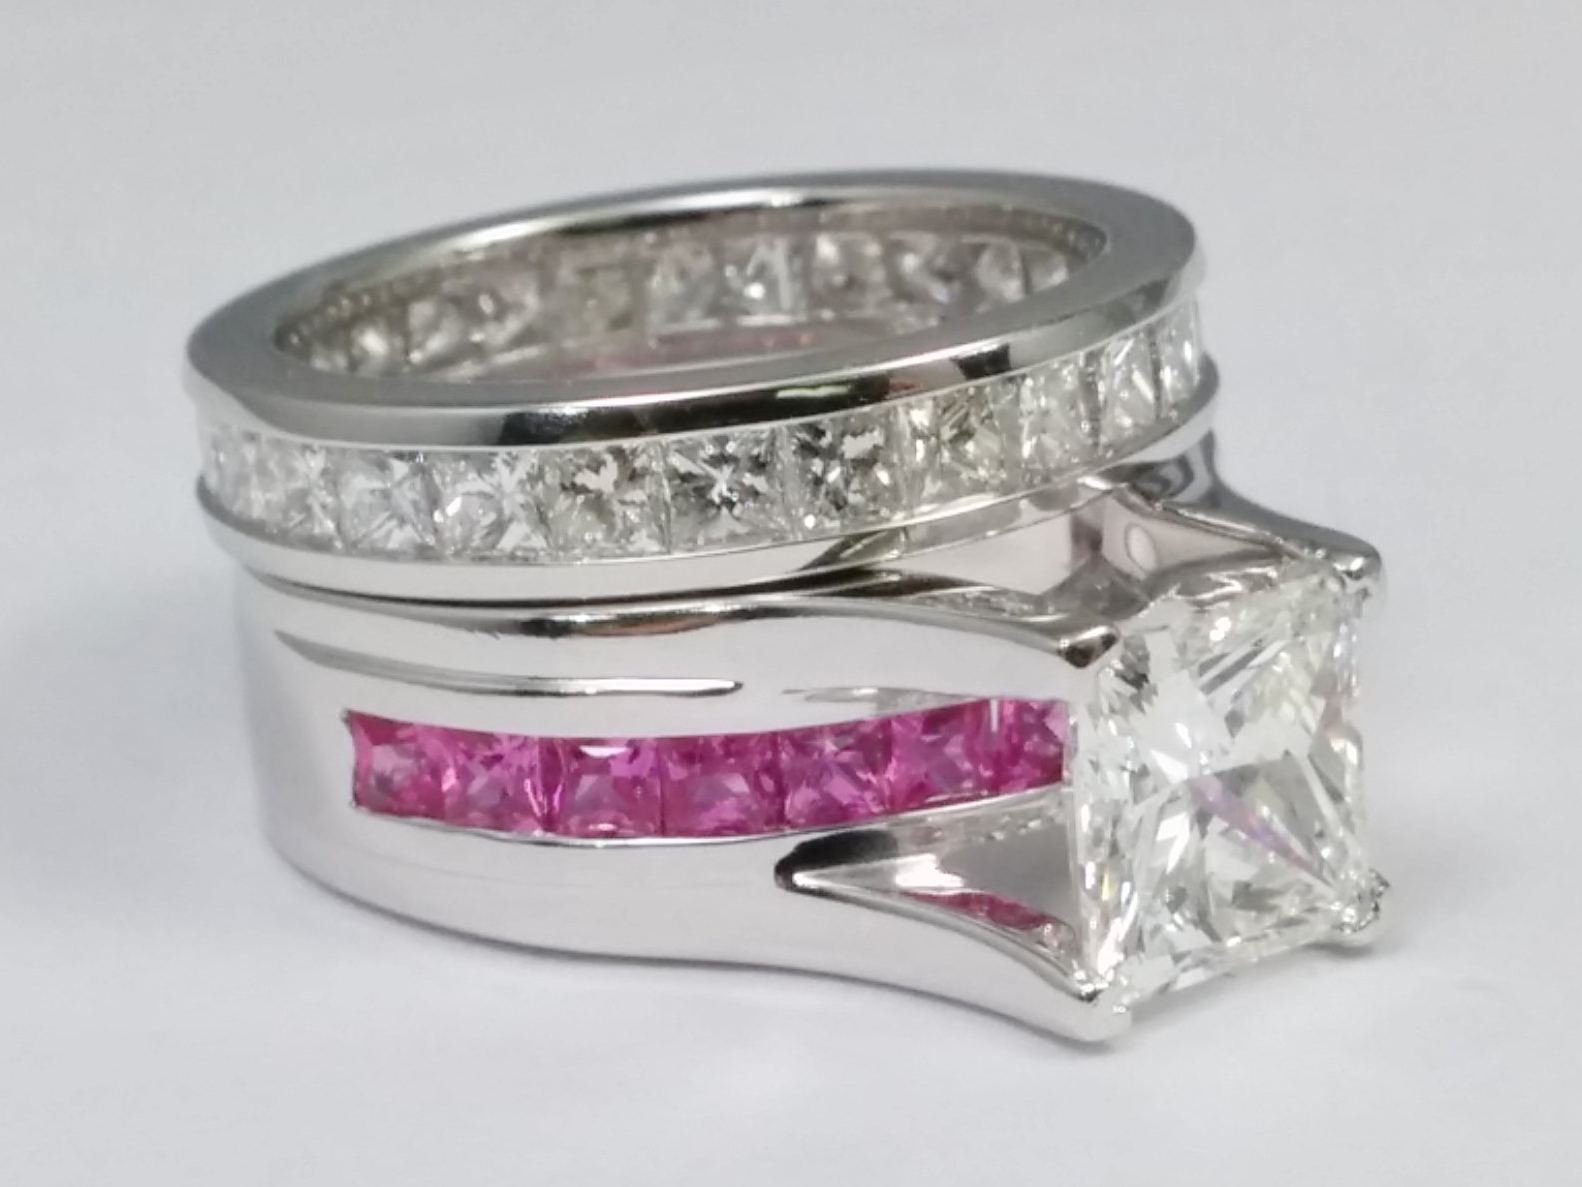 Princess Cut Diamond Bridge Engagement Ring With Pink Shire And Eternity Band